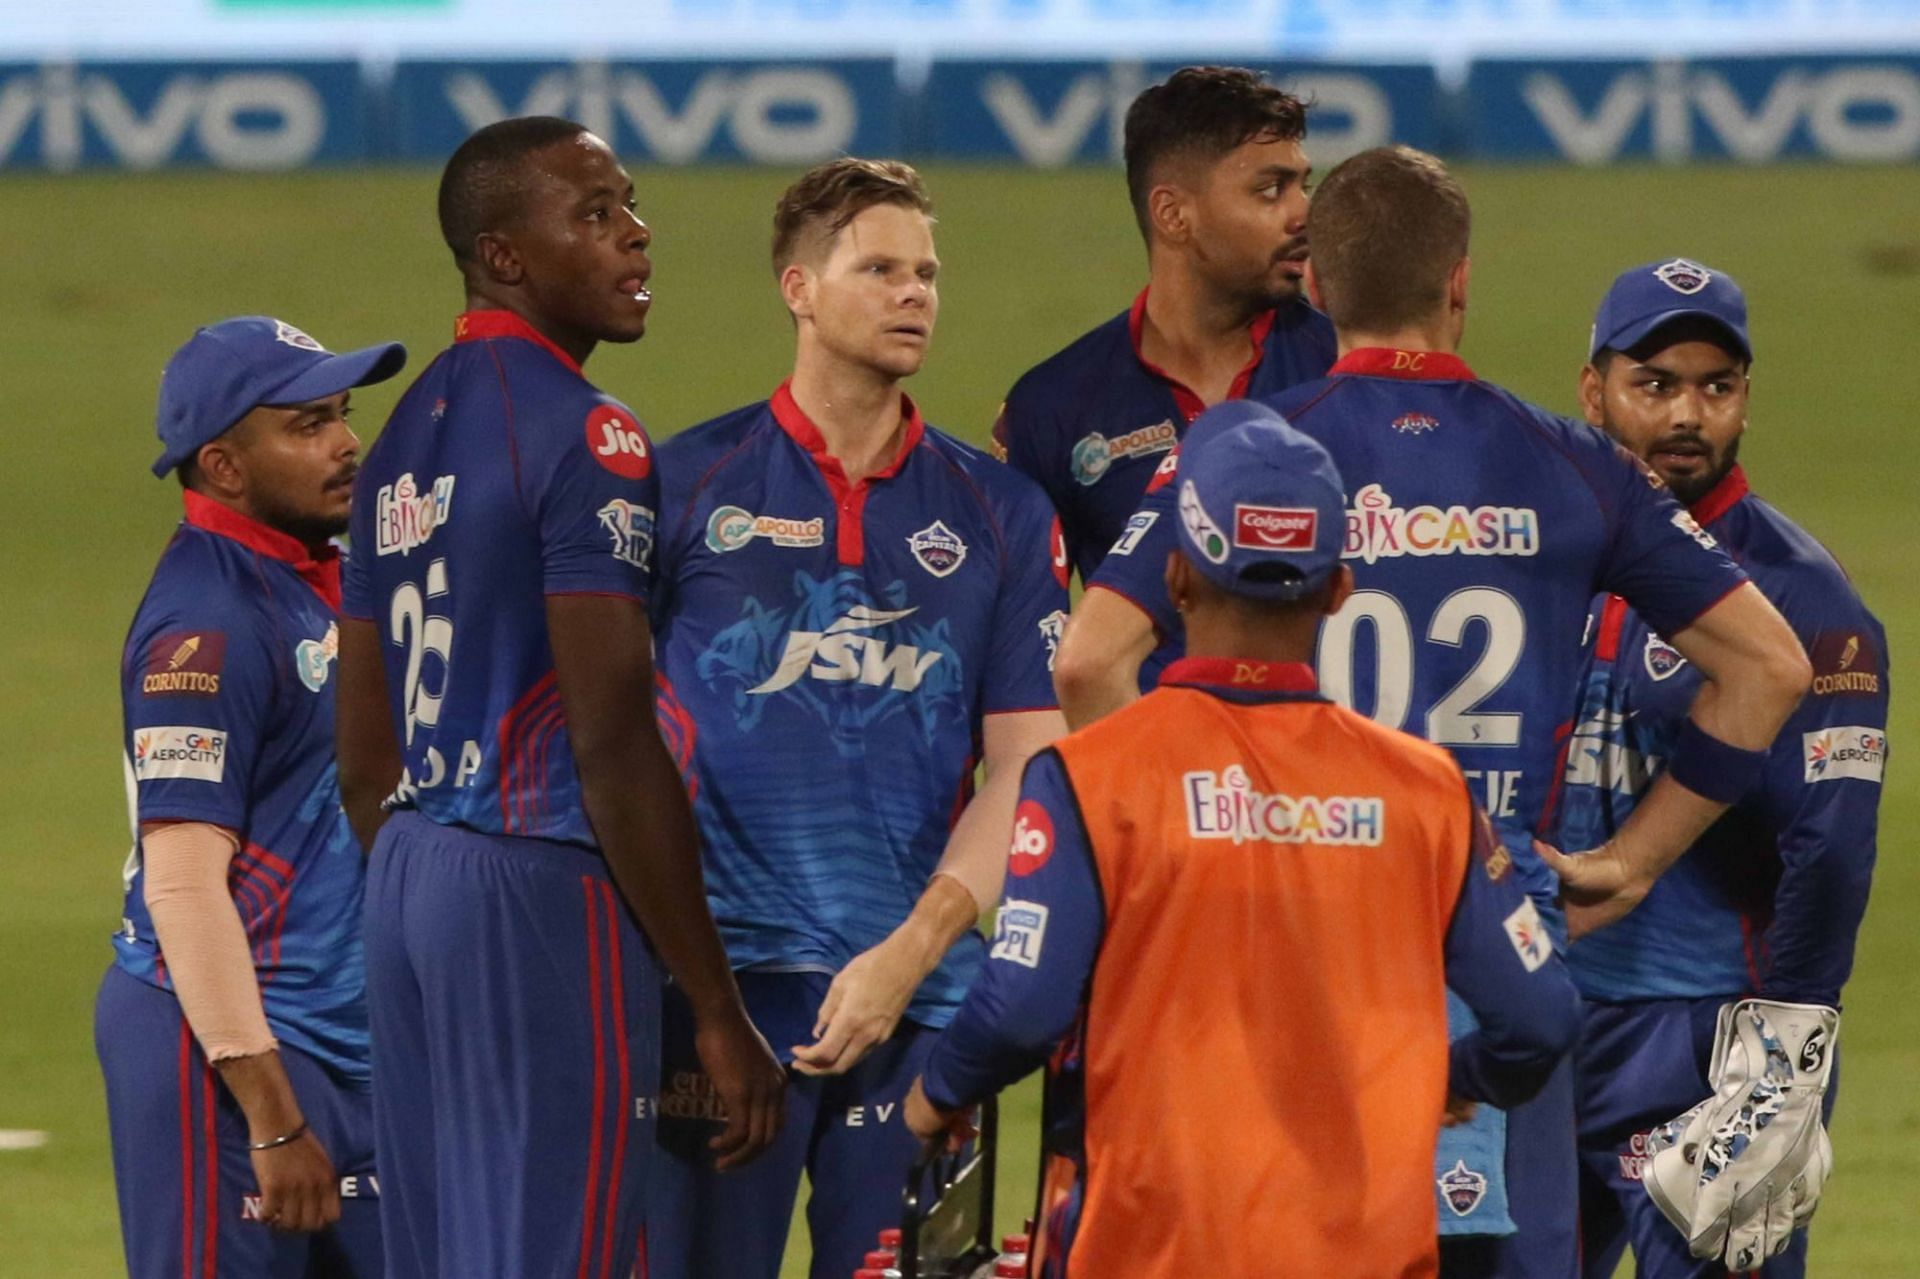 Delhi Capitals lost twice in the playoffs to crash out of IPL 2021 before the final. (Image Courtesy: IPLT20.com)